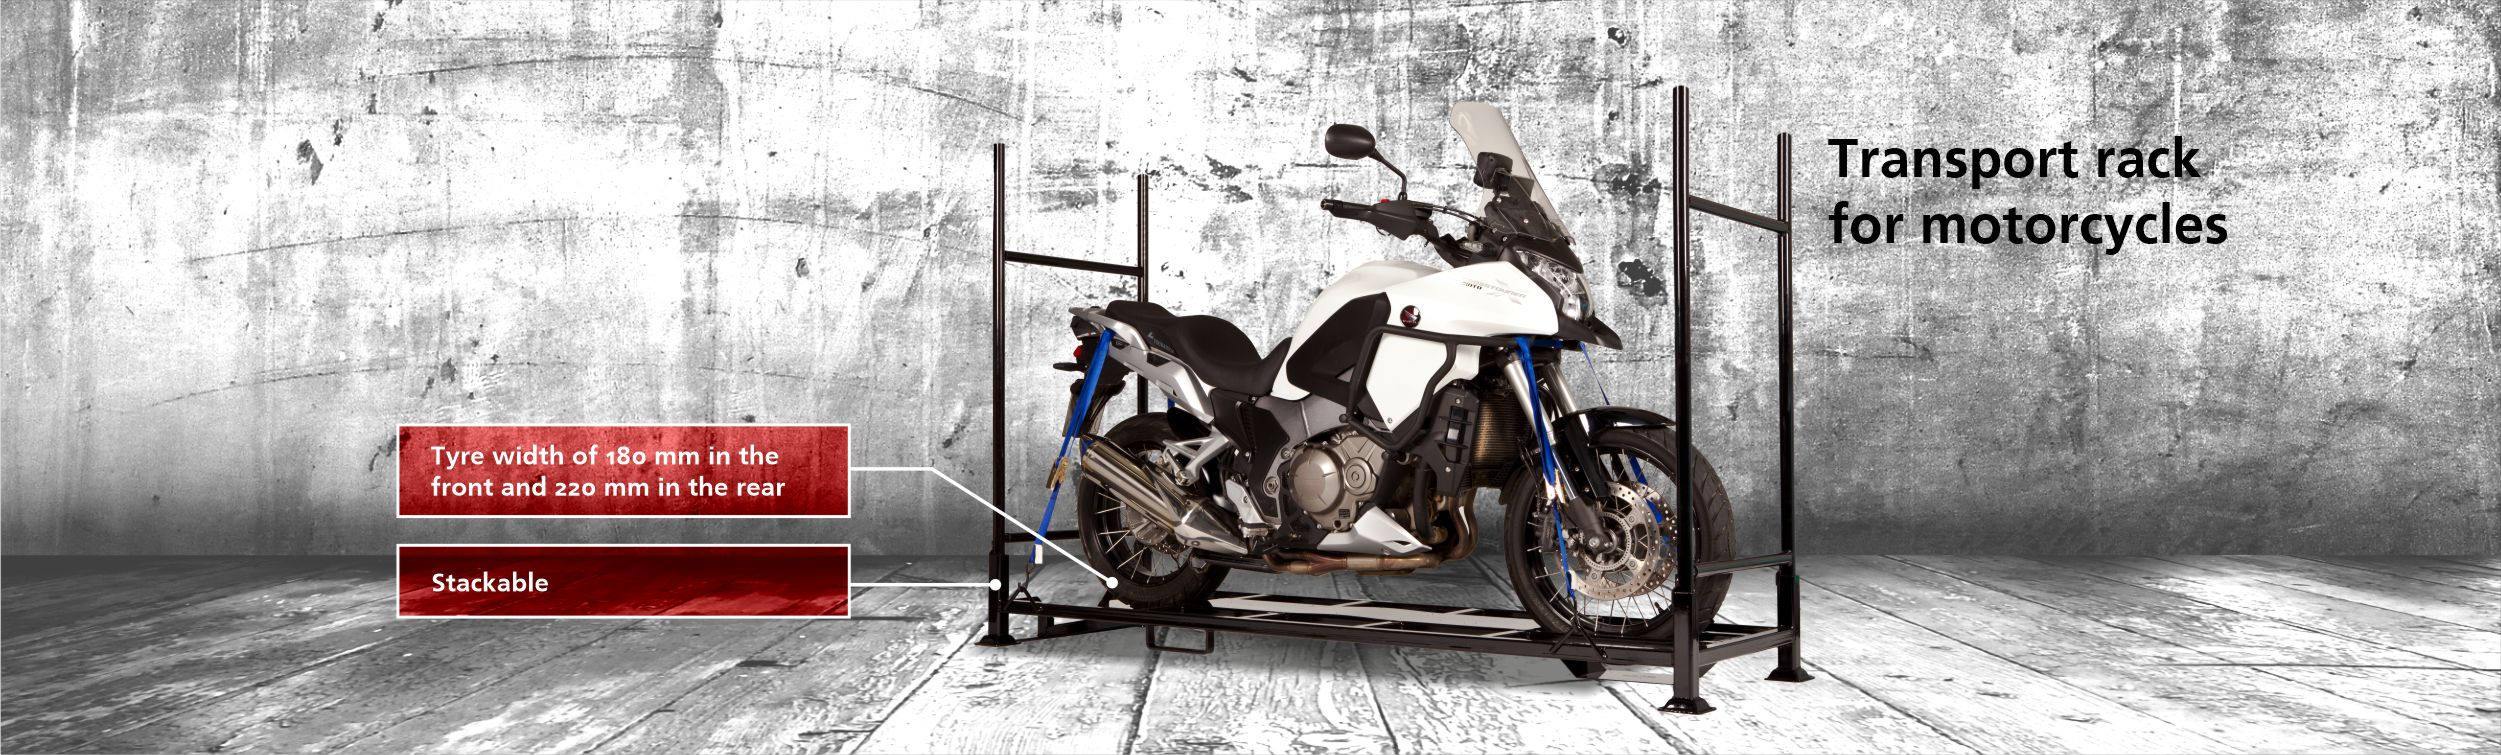 transport_rack_motorcycles